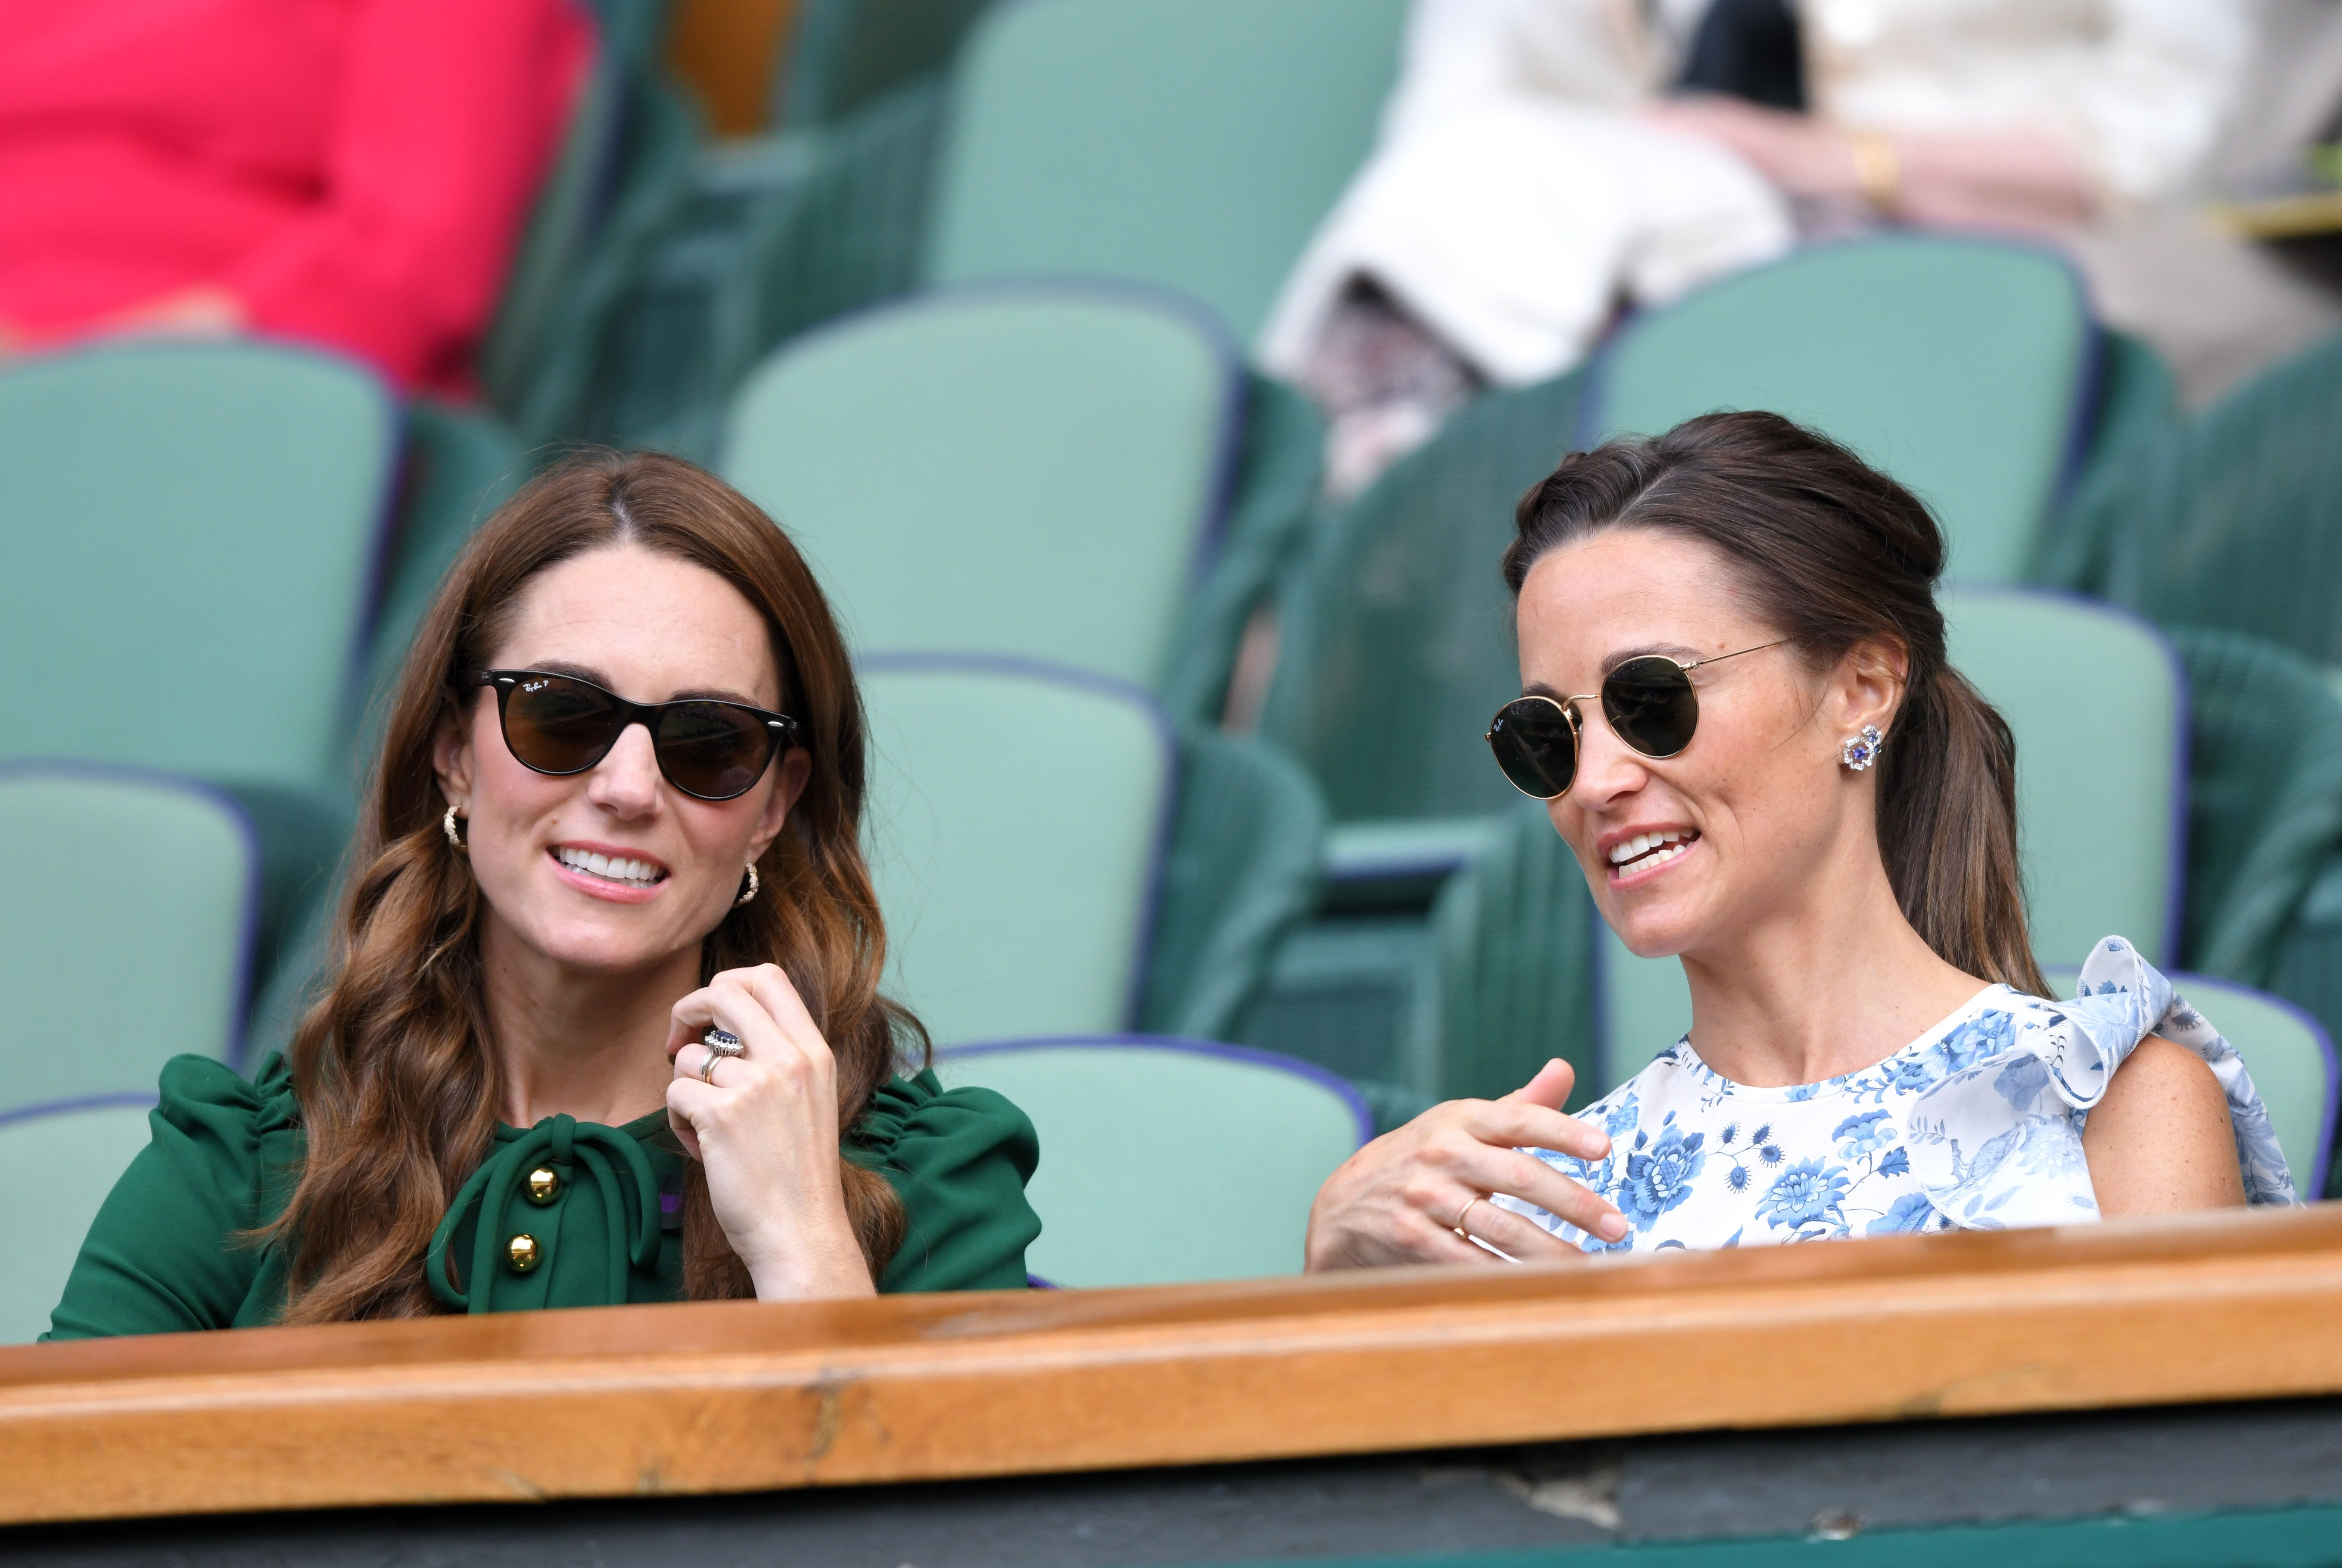 Kate Middleton and Pippa Middleton in the Royal Box on Centre Court during day twelve of the Wimbledon Tennis Championships at All England Lawn Tennis and Croquet Club on July 13, 2019 | Photo: Getty Images